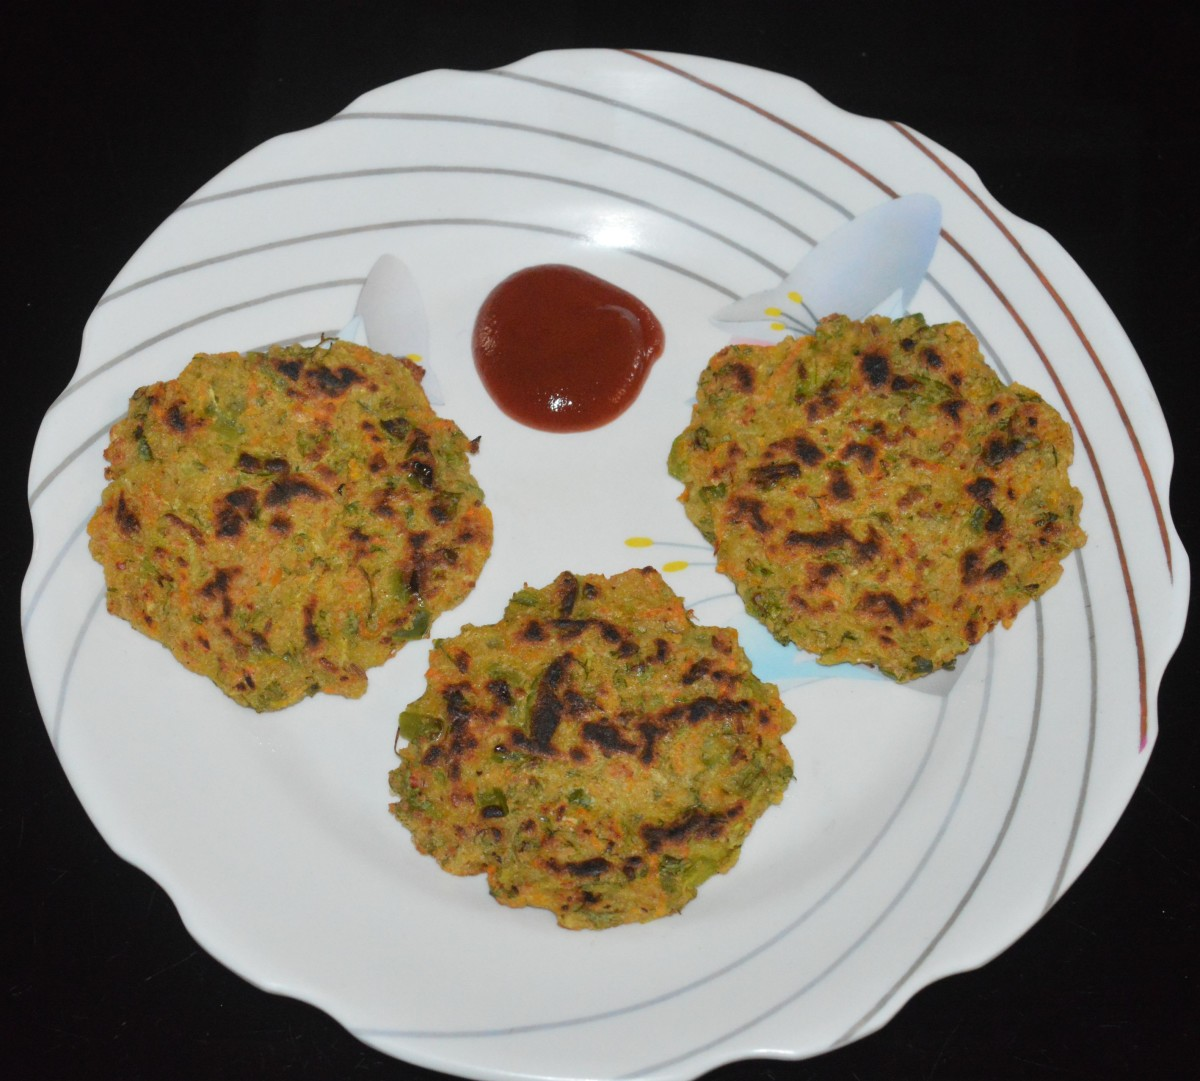 Make more cheela with the remaining batter. Serve them hot with coconut chutney, pickle, or tomato sauce. Enjoy eating them for breakfast or dinner.